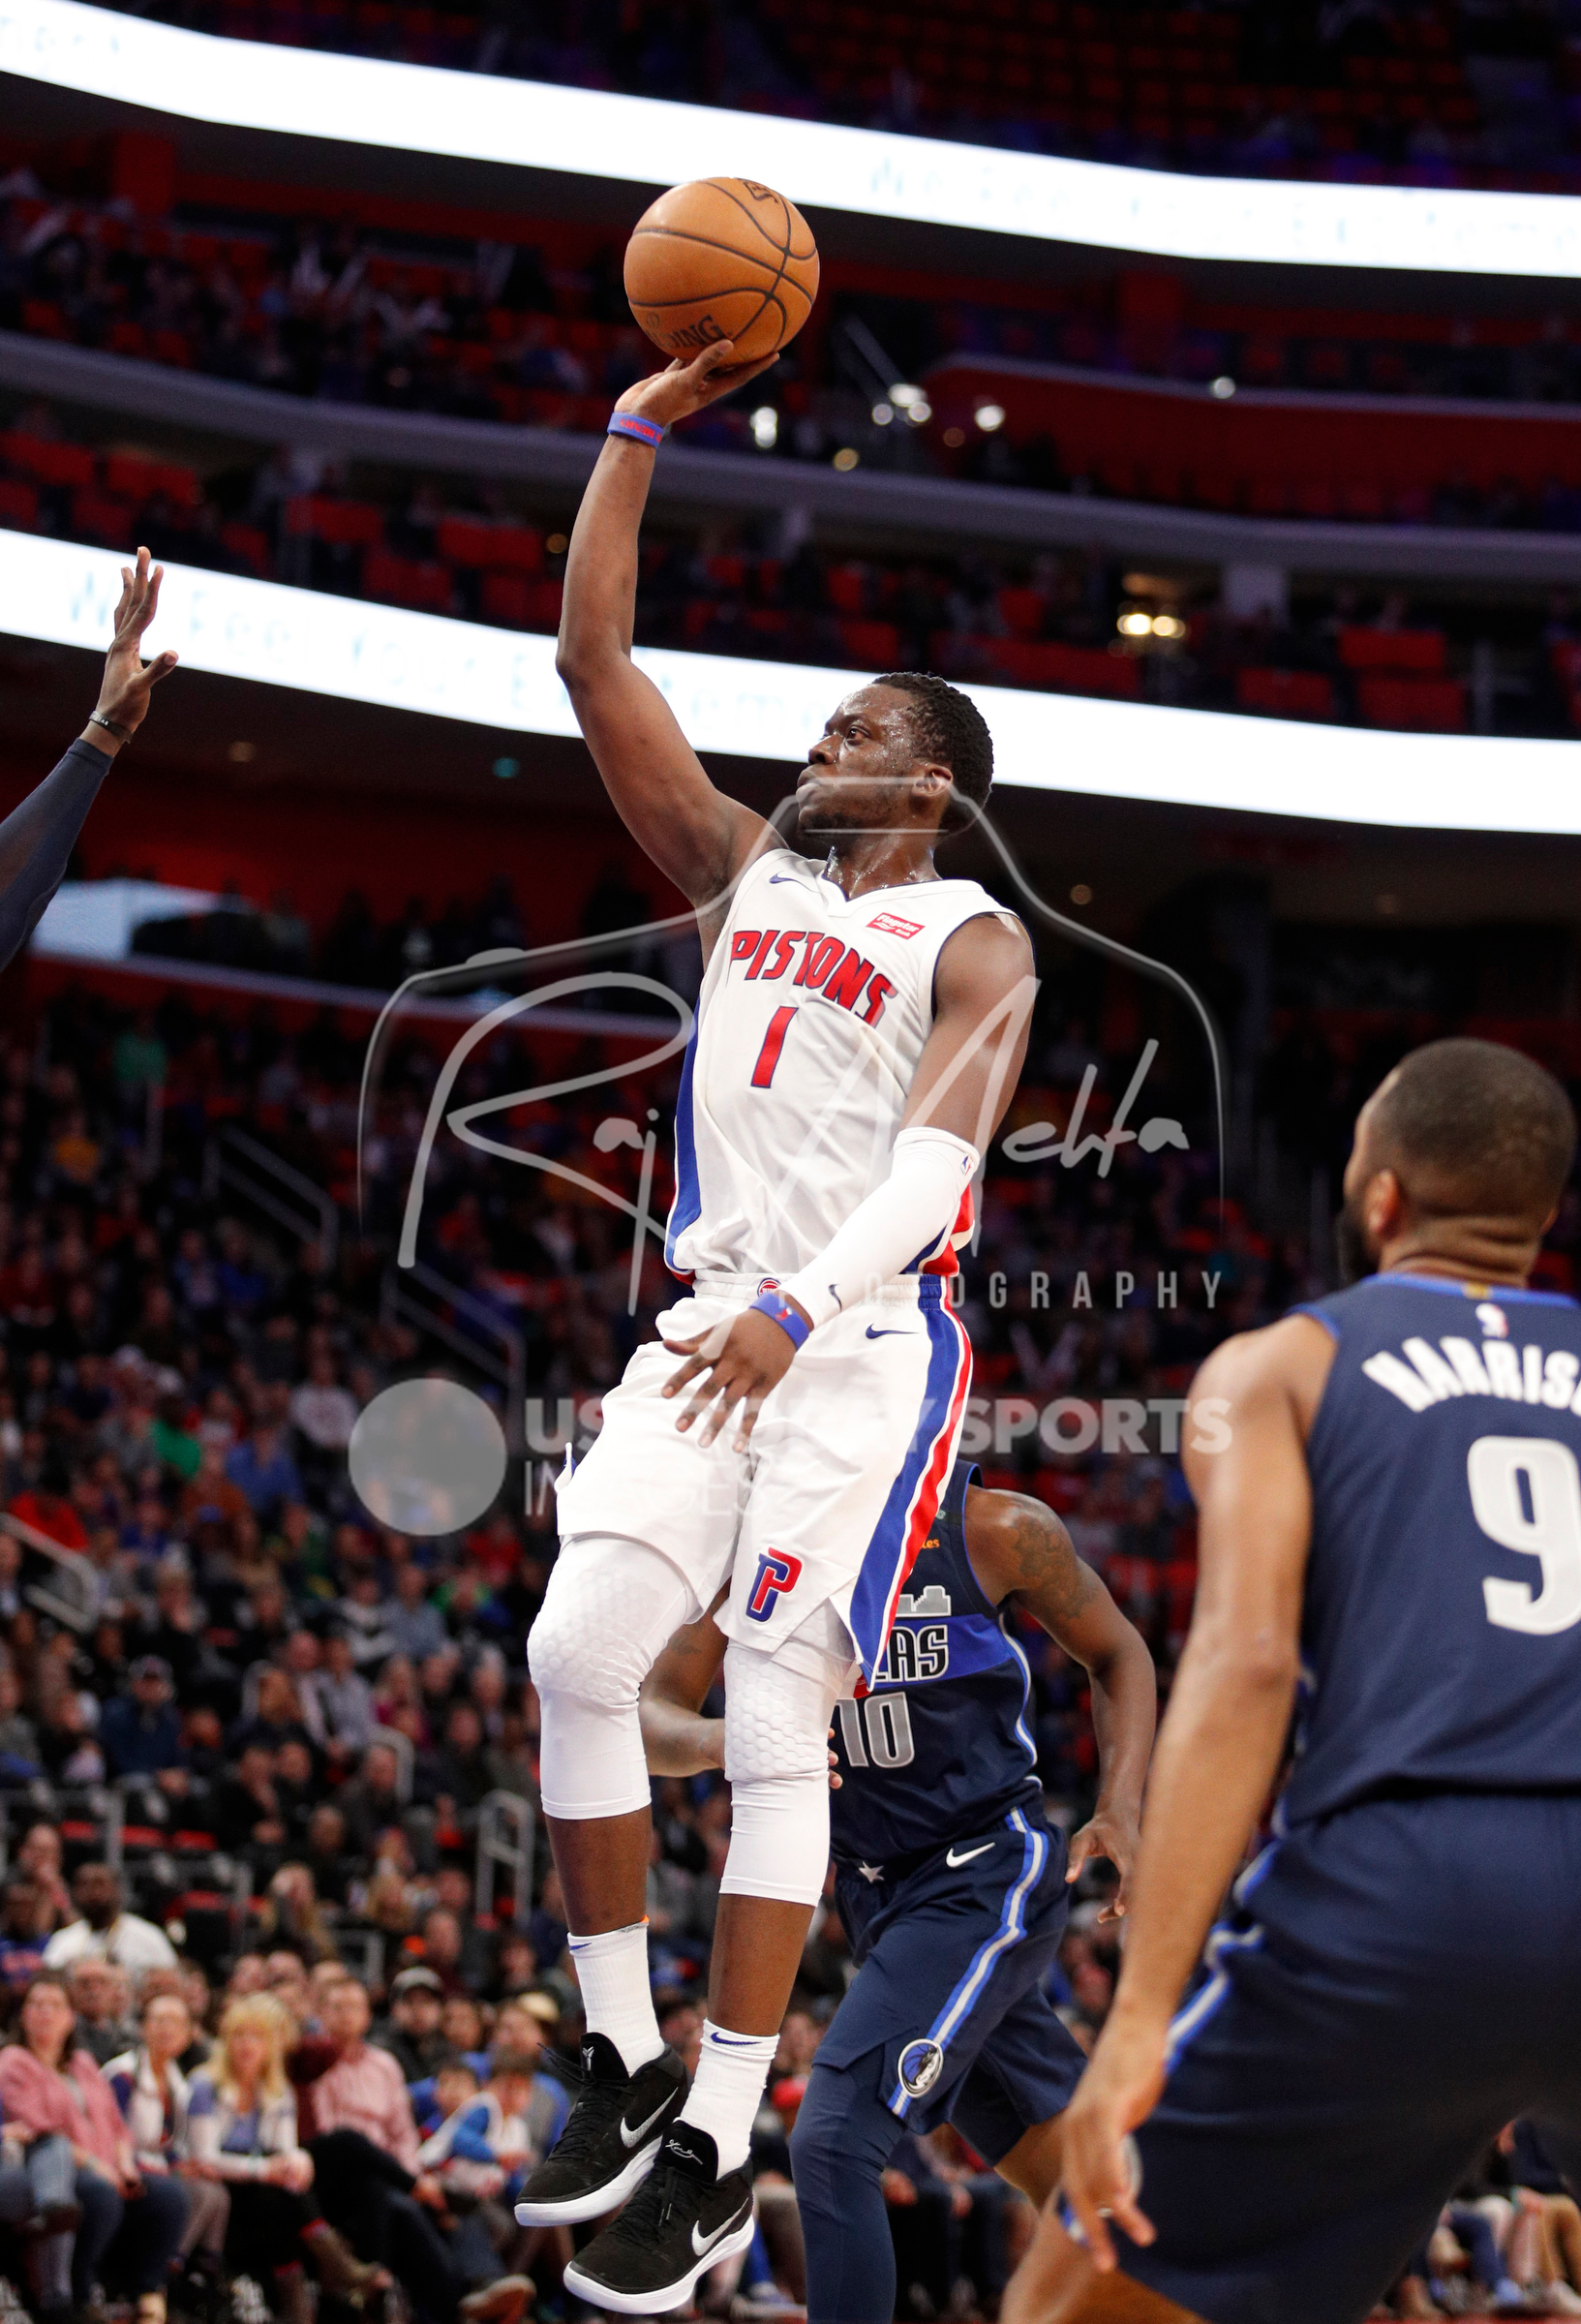 Apr 6, 2018; Detroit, MI, USA; Detroit Pistons guard Reggie Jackson (1) takes a shot during overtime against the Dallas Mavericks at Little Caesars Arena. Mandatory Credit: Raj Mehta-USA TODAY Sports